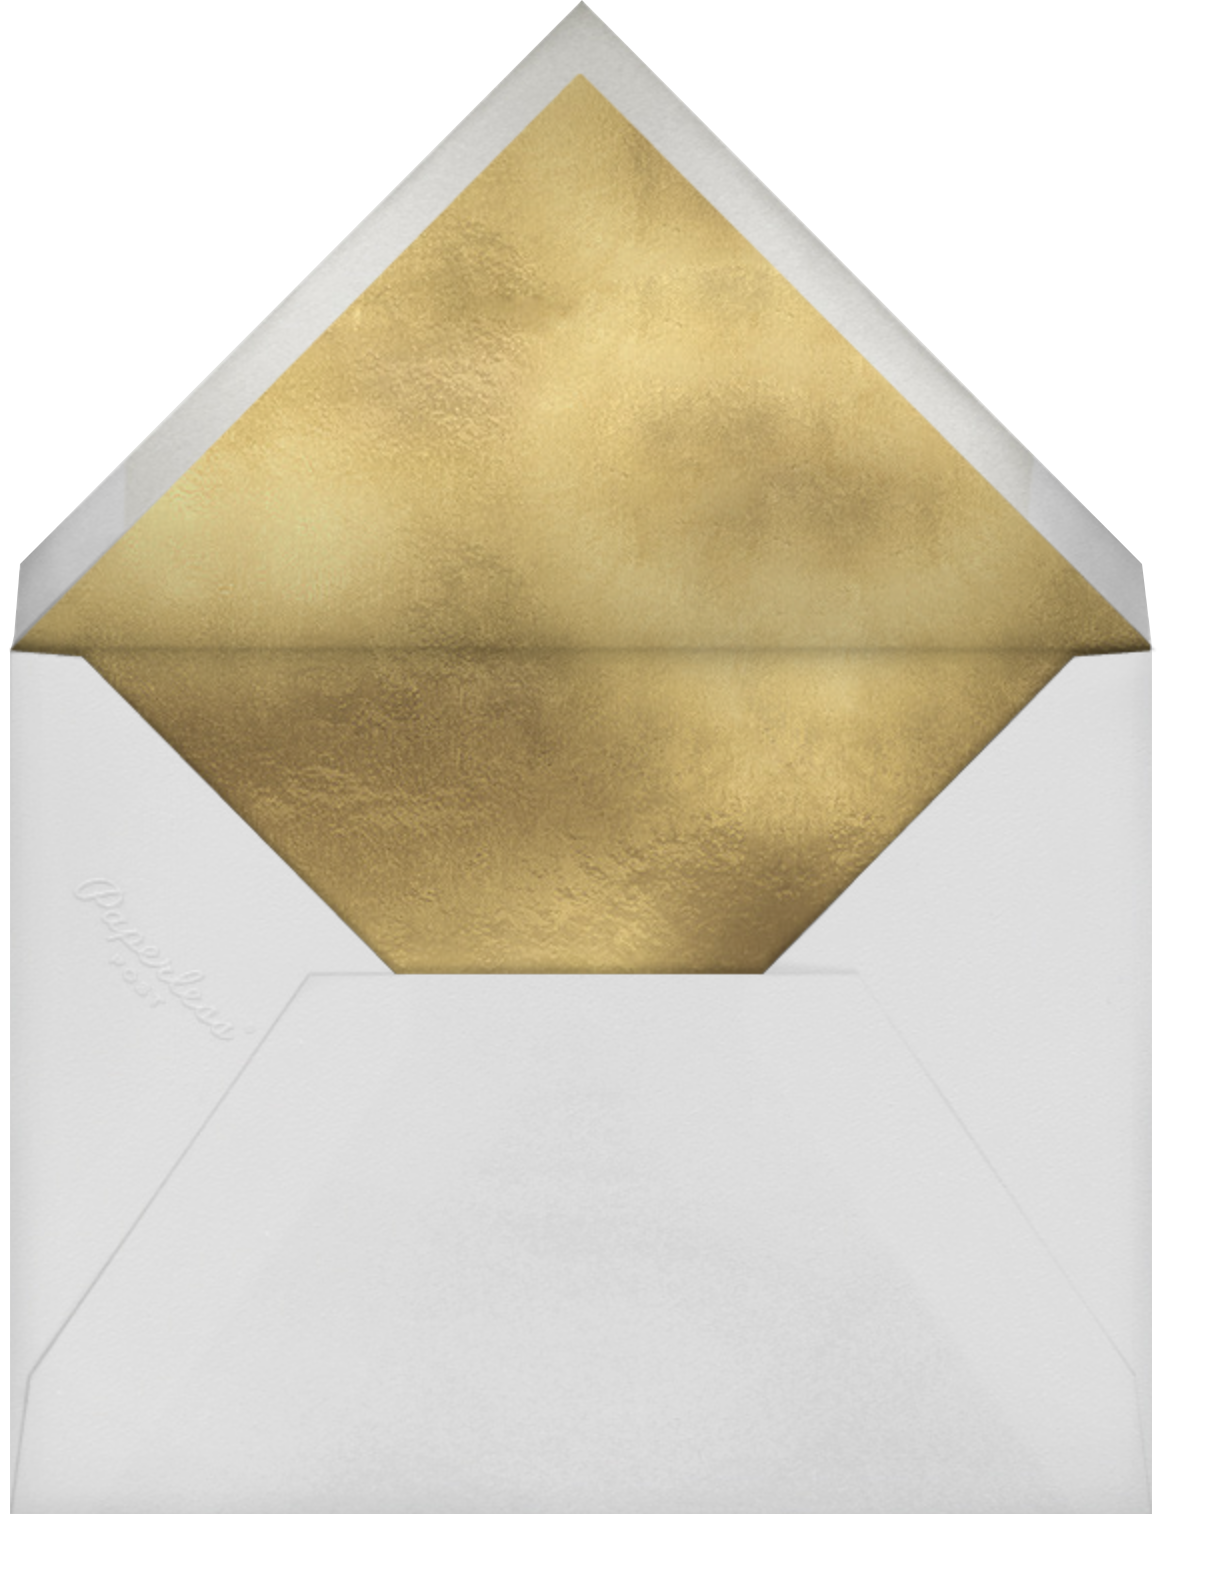 Hex Frame - Kelly Wearstler - Adult birthday - envelope back